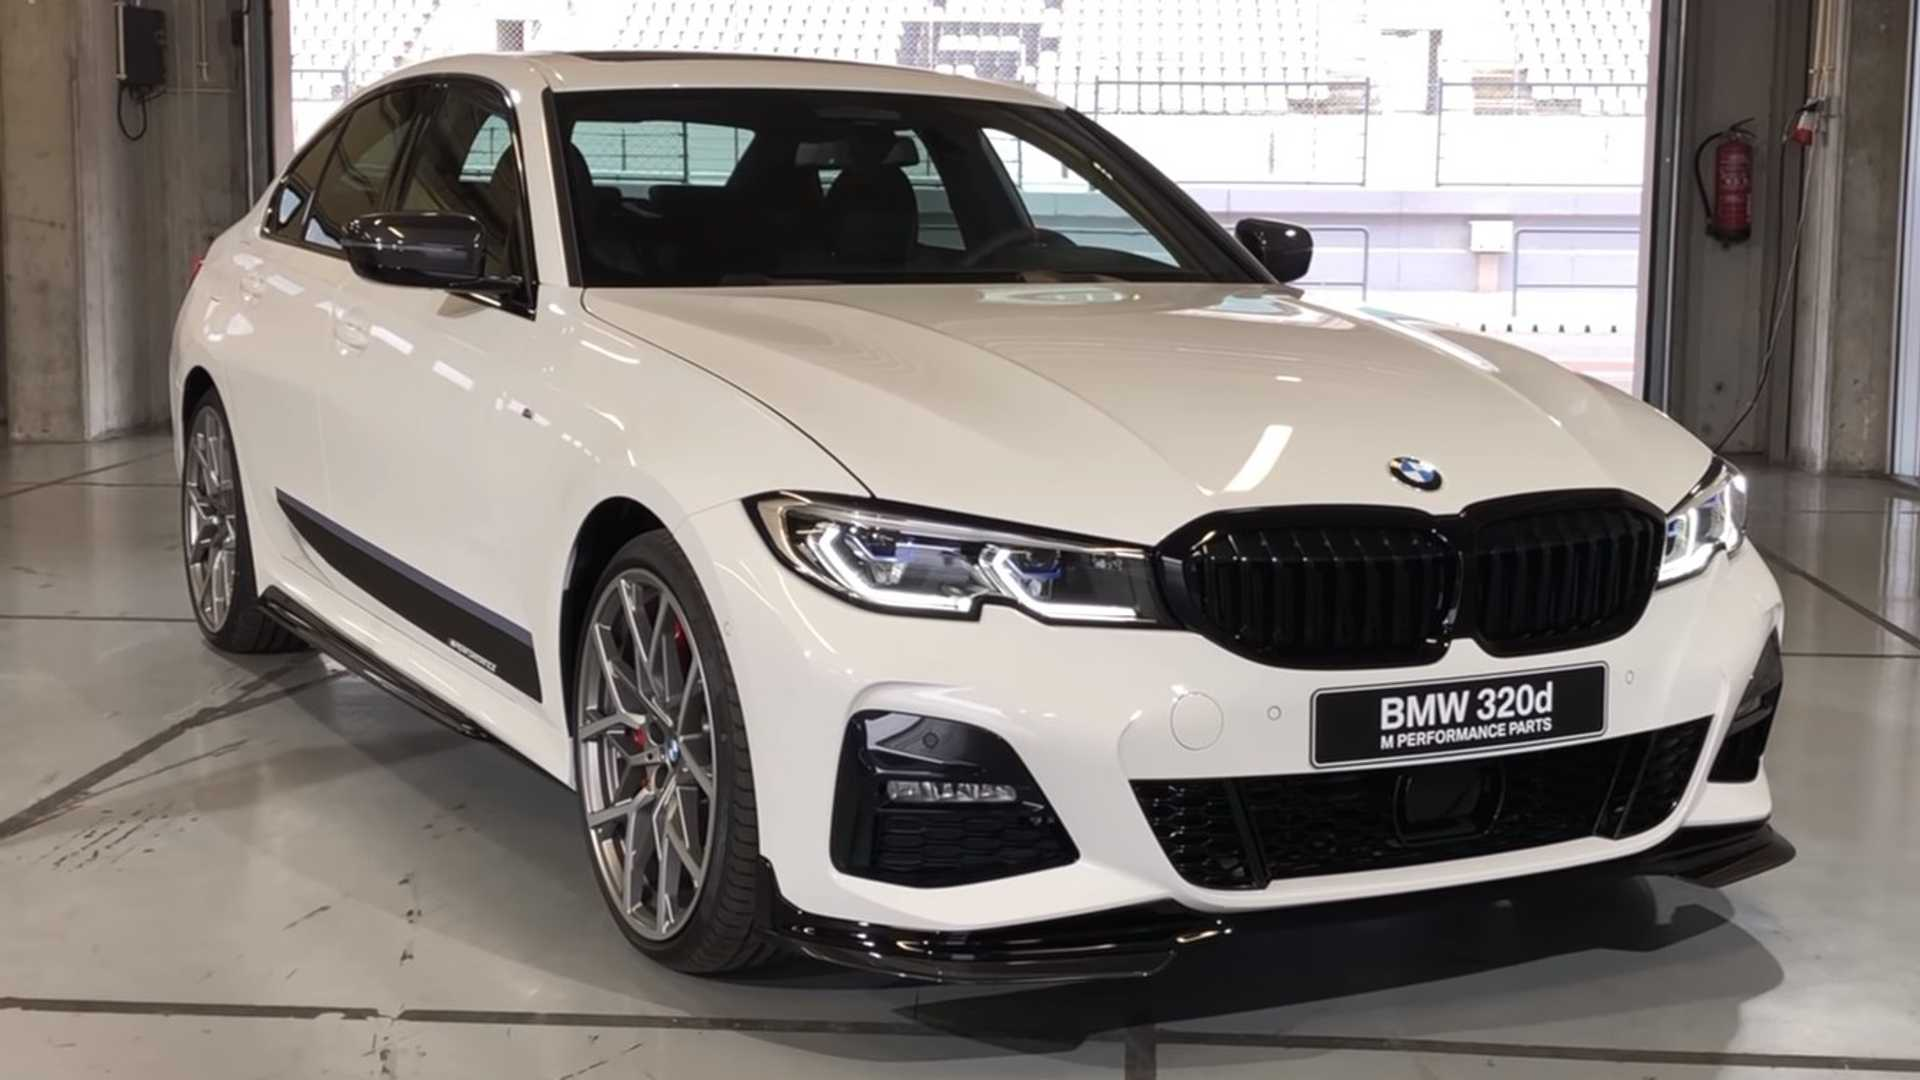 24 New 2019 3 Series Bmw New Concept by 2019 3 Series Bmw